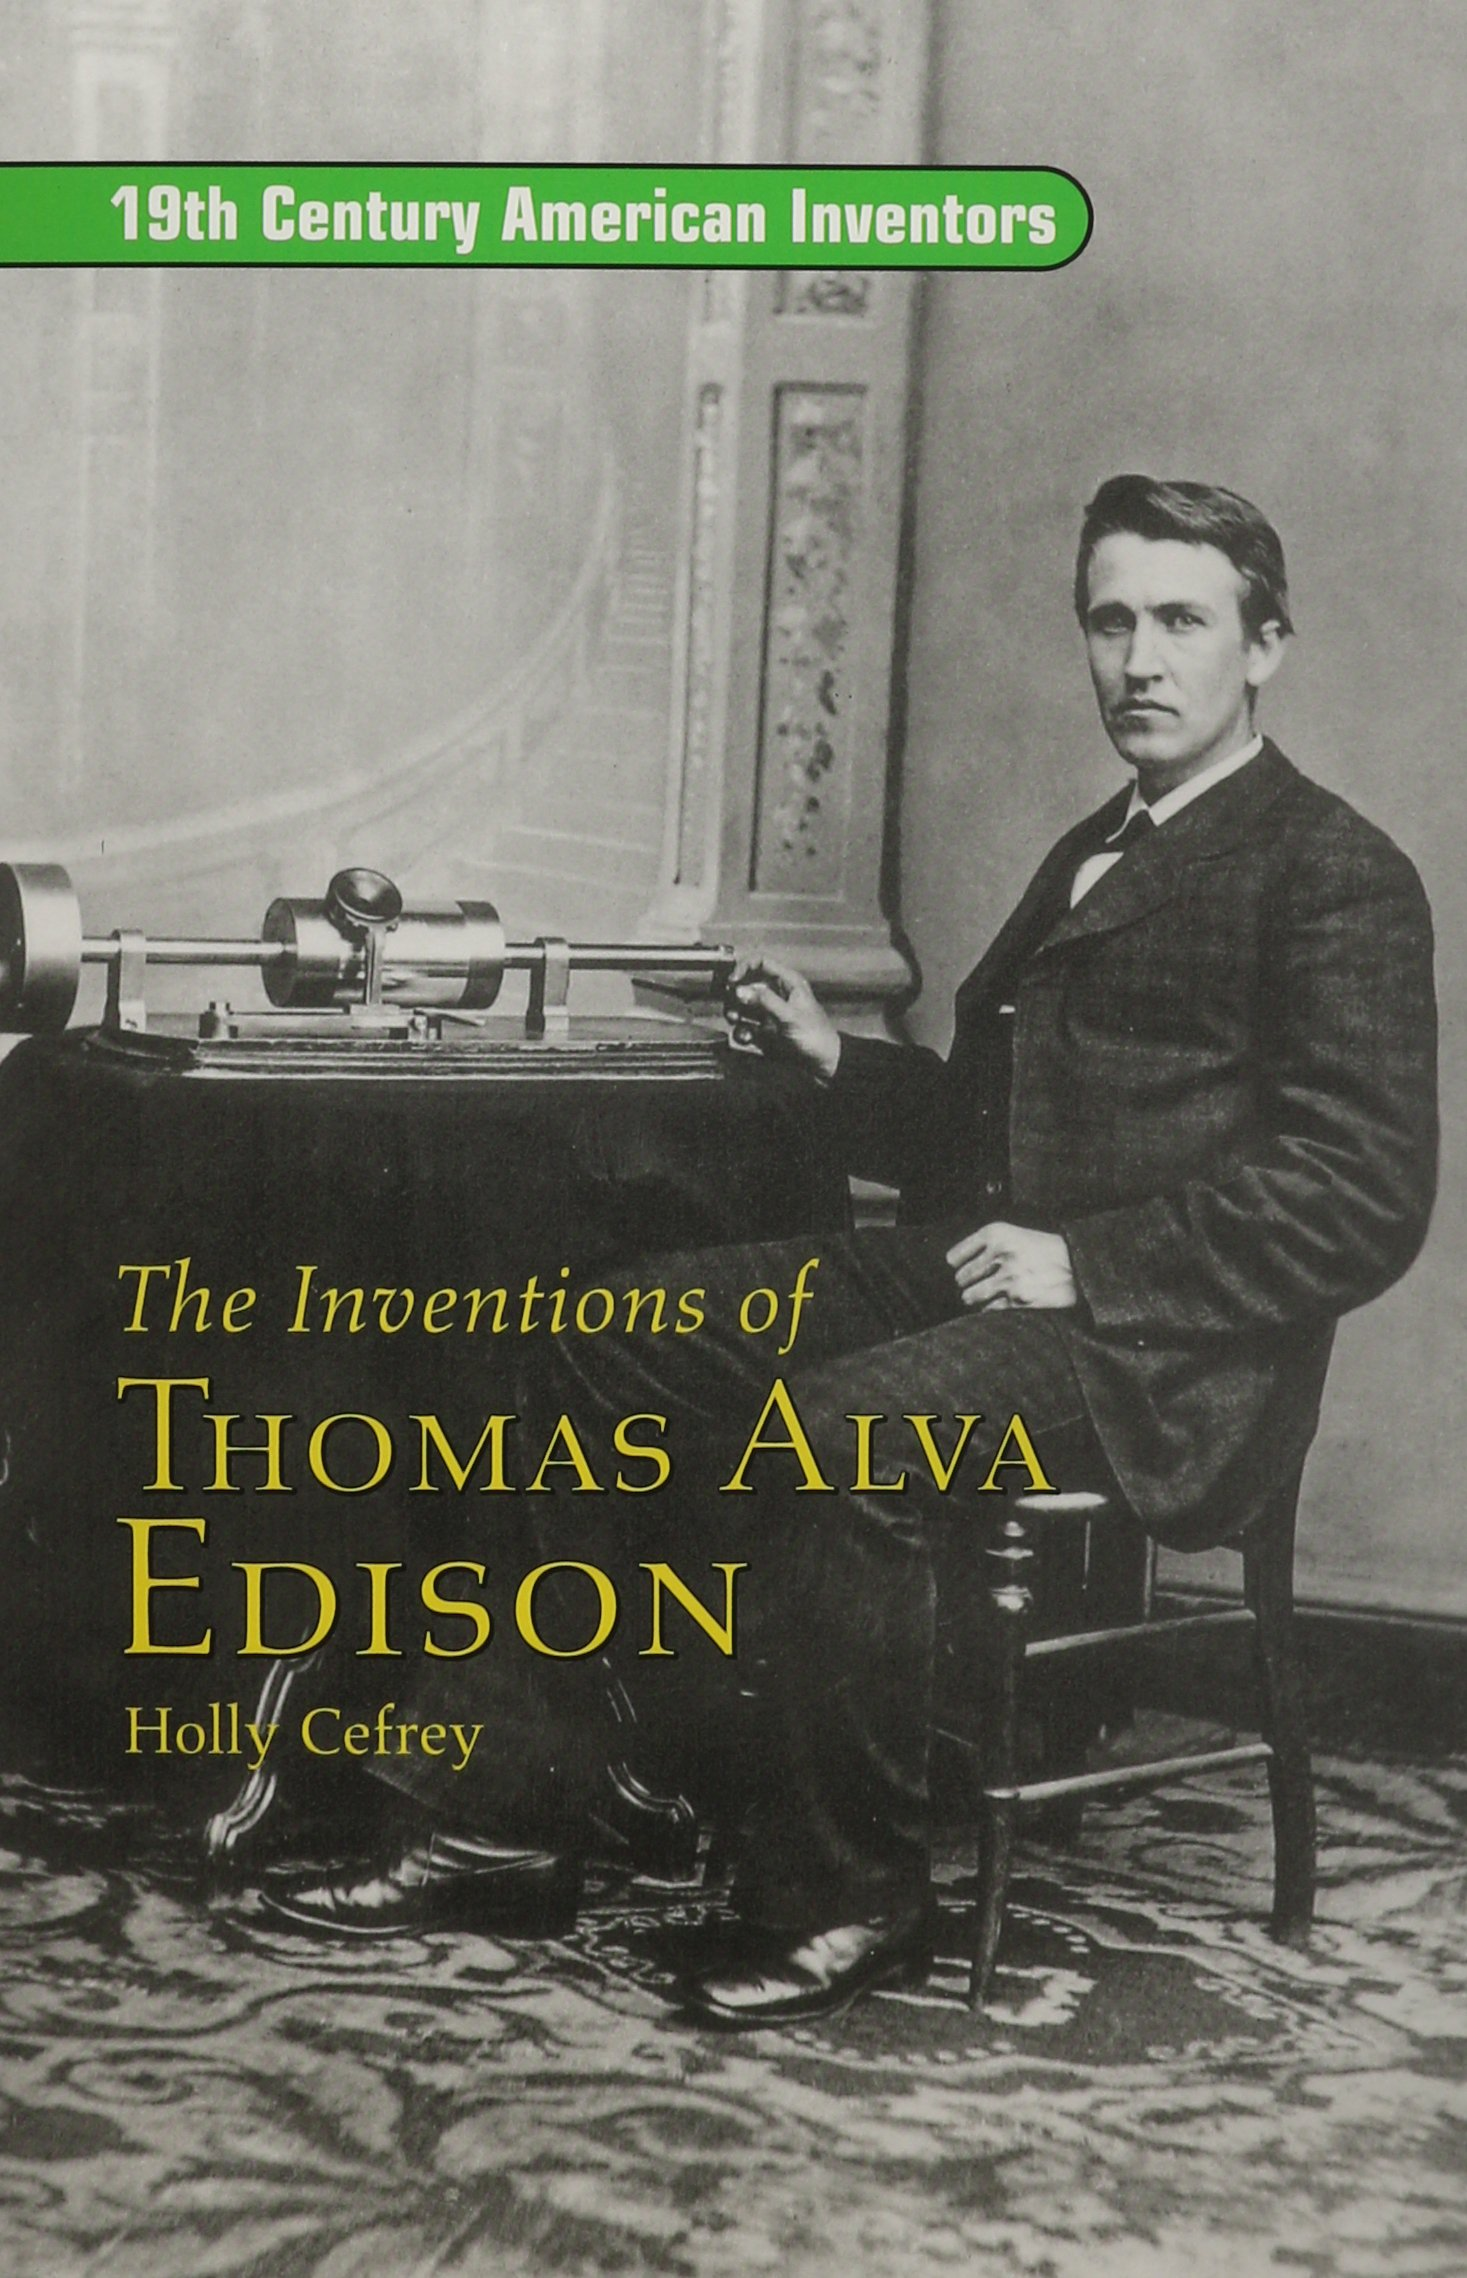 Download Rigby On Deck Reading Libraries: Leveled Reader Inventions of Thomas Alva Edison, The pdf